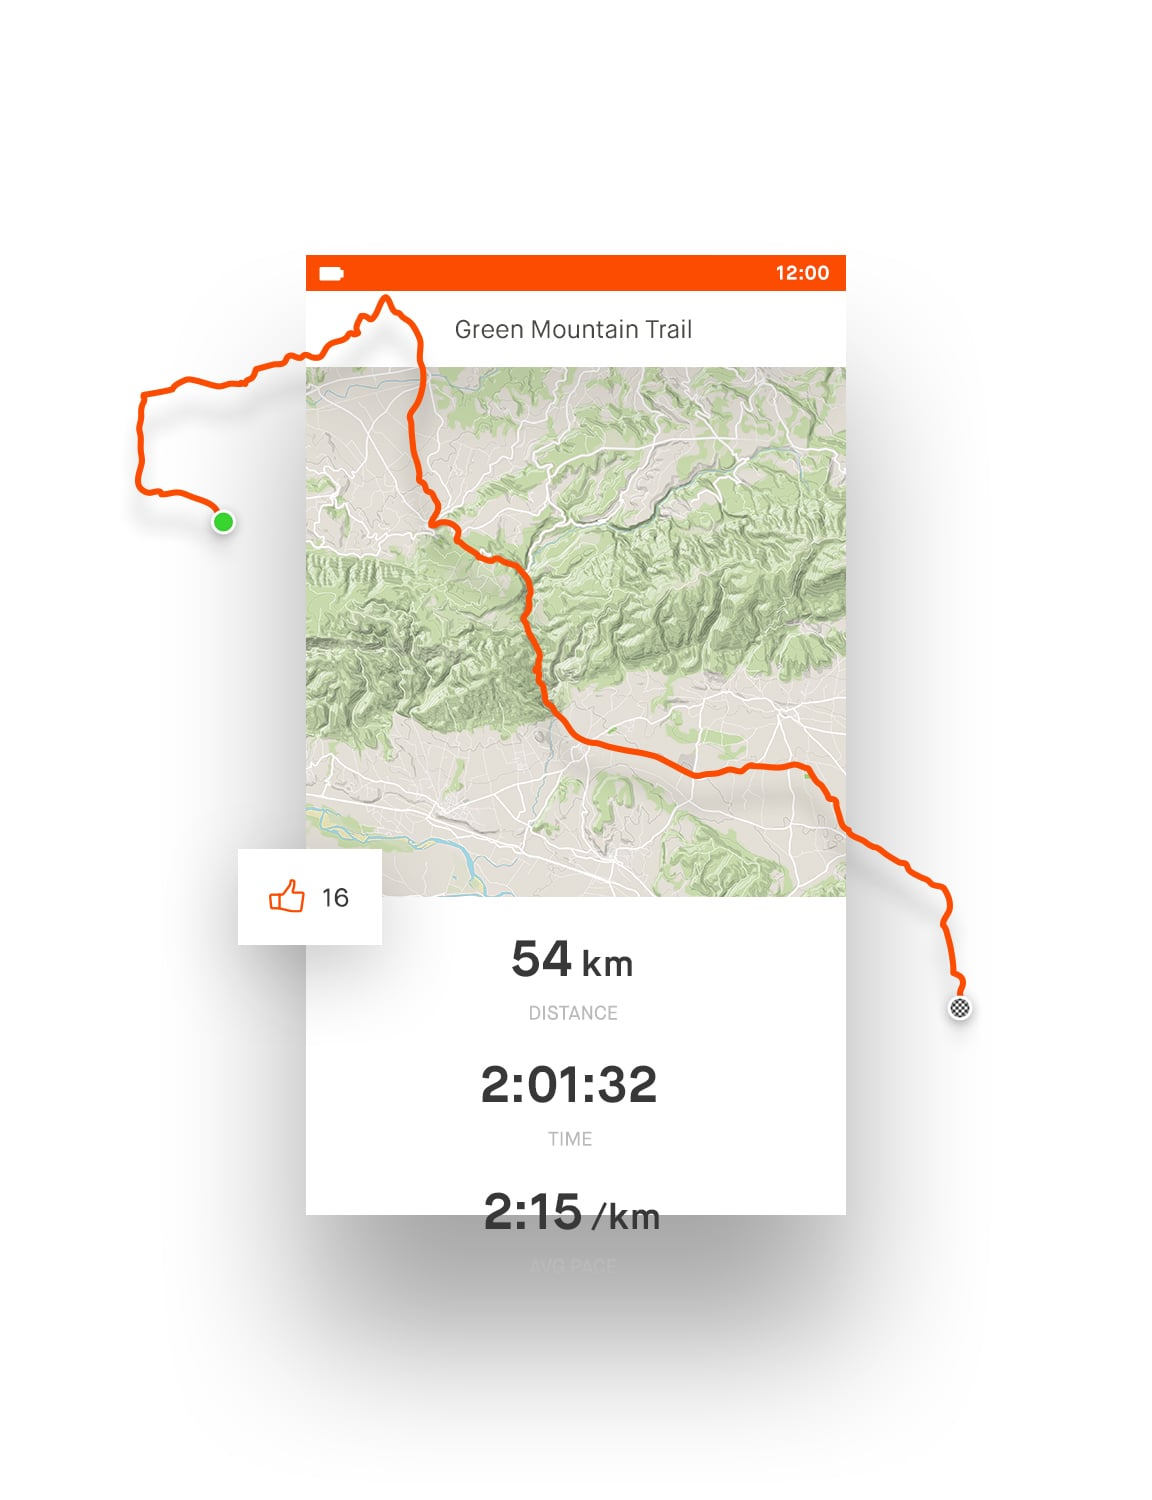 Salon Sev Et Cin Strava Run And Cycling Tracking On The Social Network For Athletes